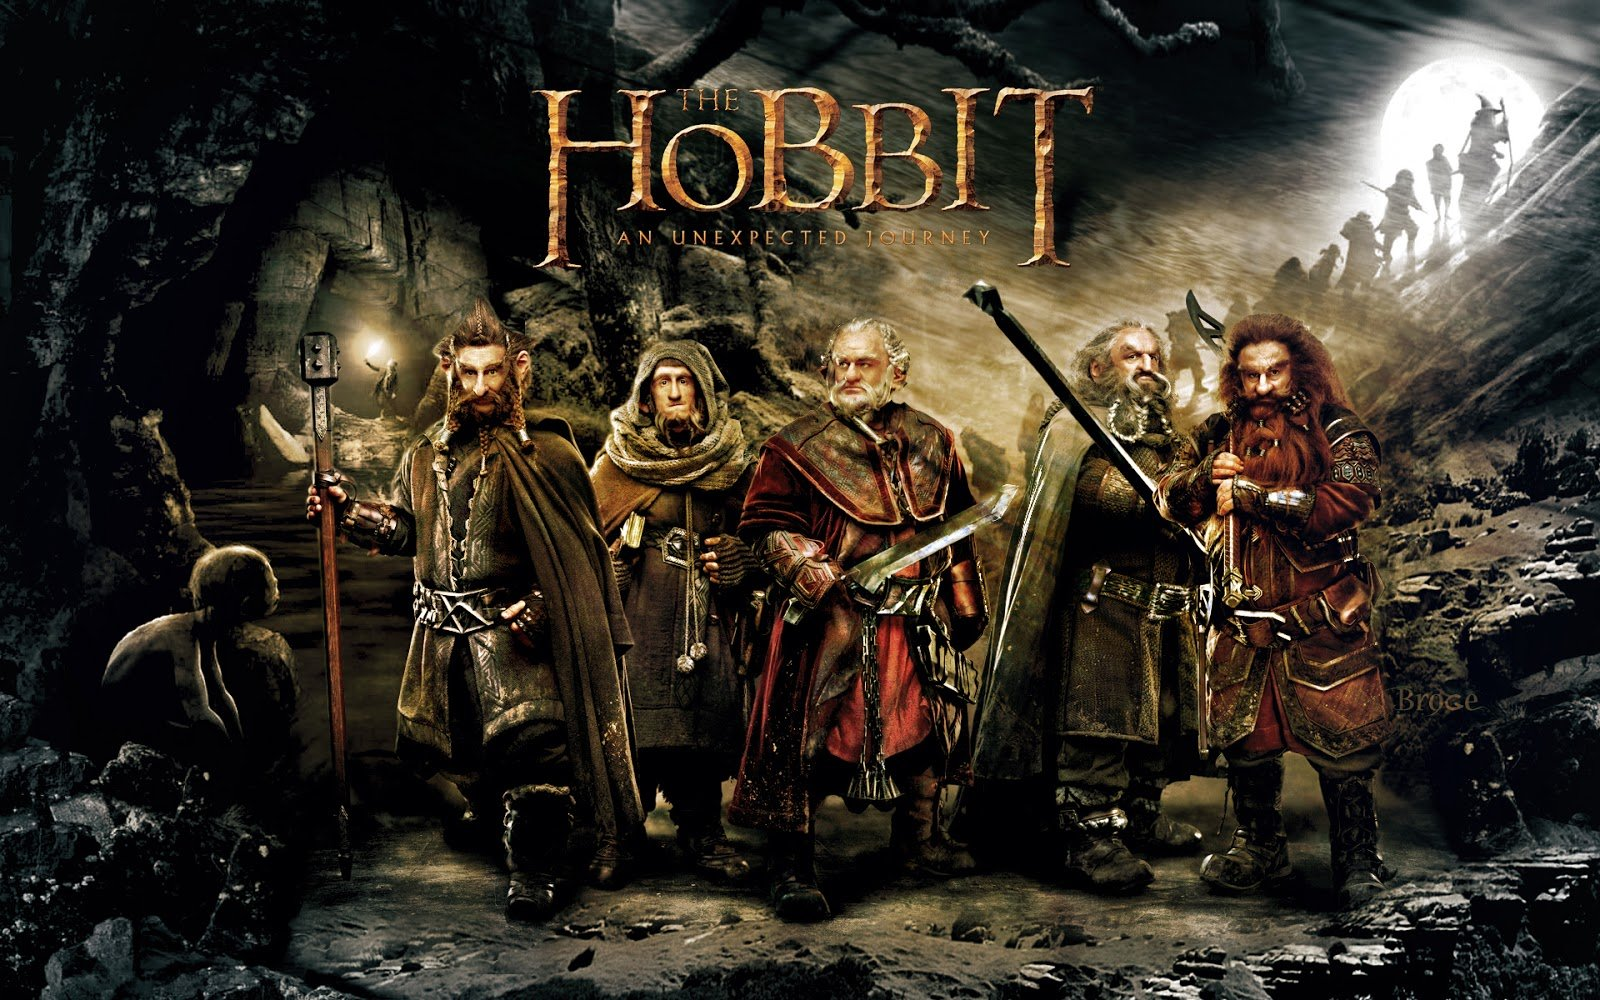 The Hobbit Movie Wallpaper Set 2 2013 Wallpaper 1600x1000